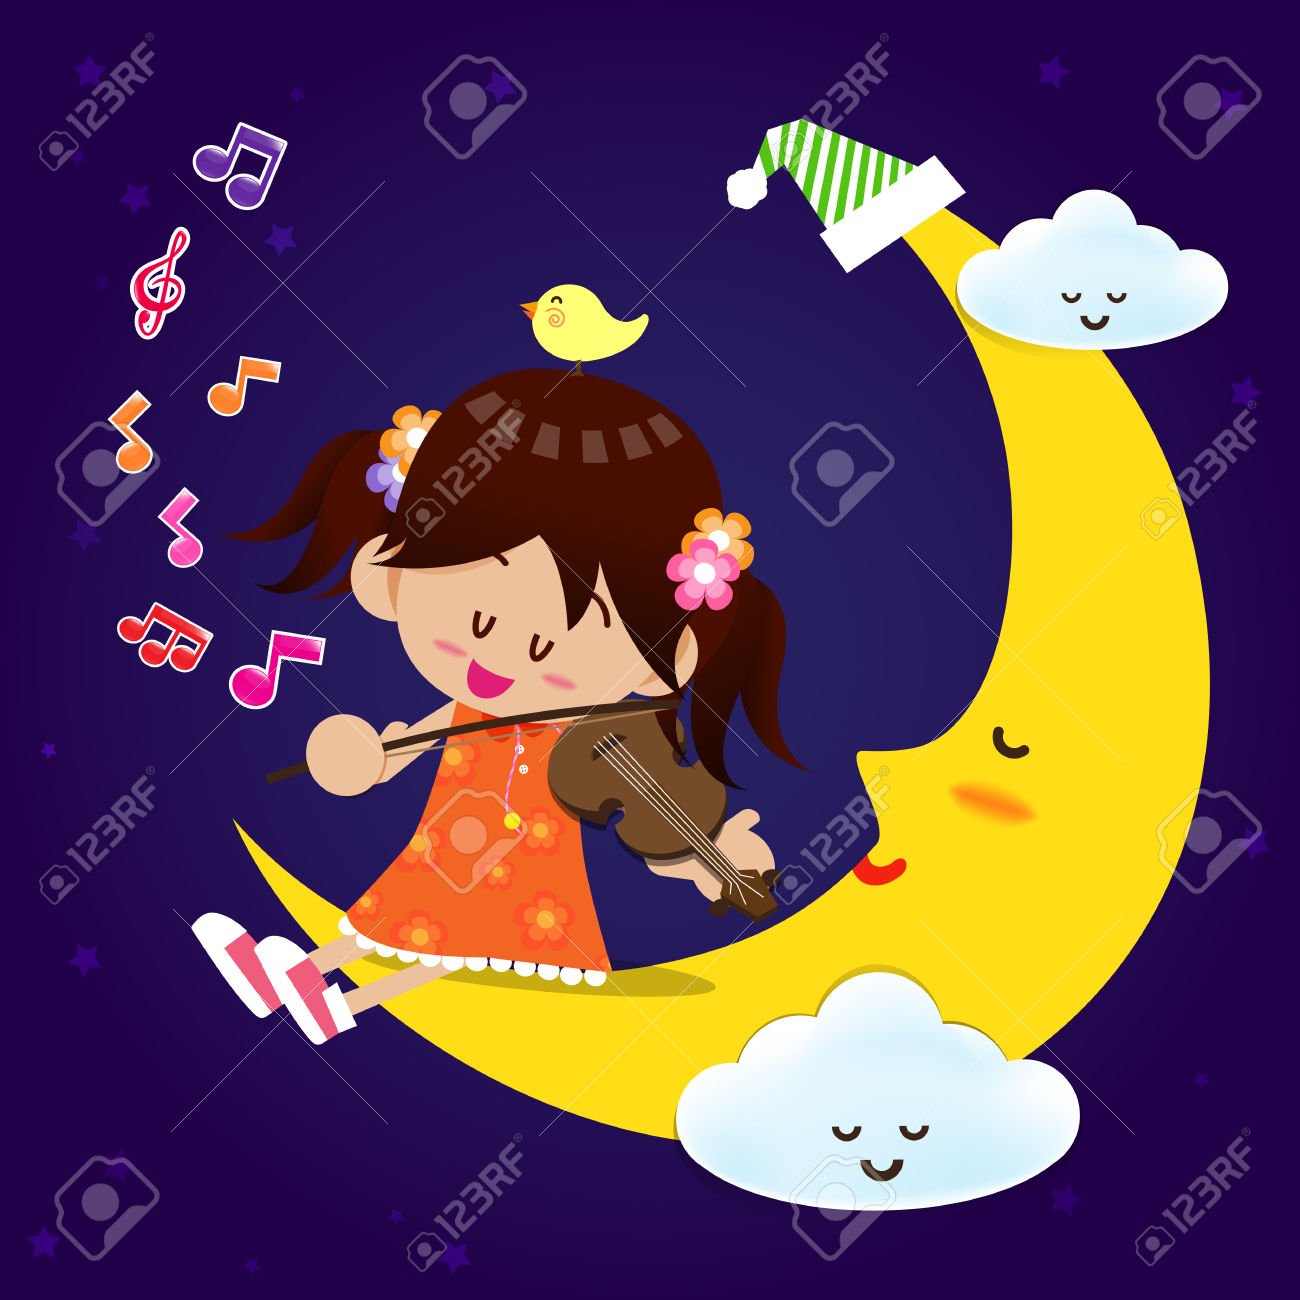 Smile Cute Girl Play The Music With Violin On The Sleeping Moon.